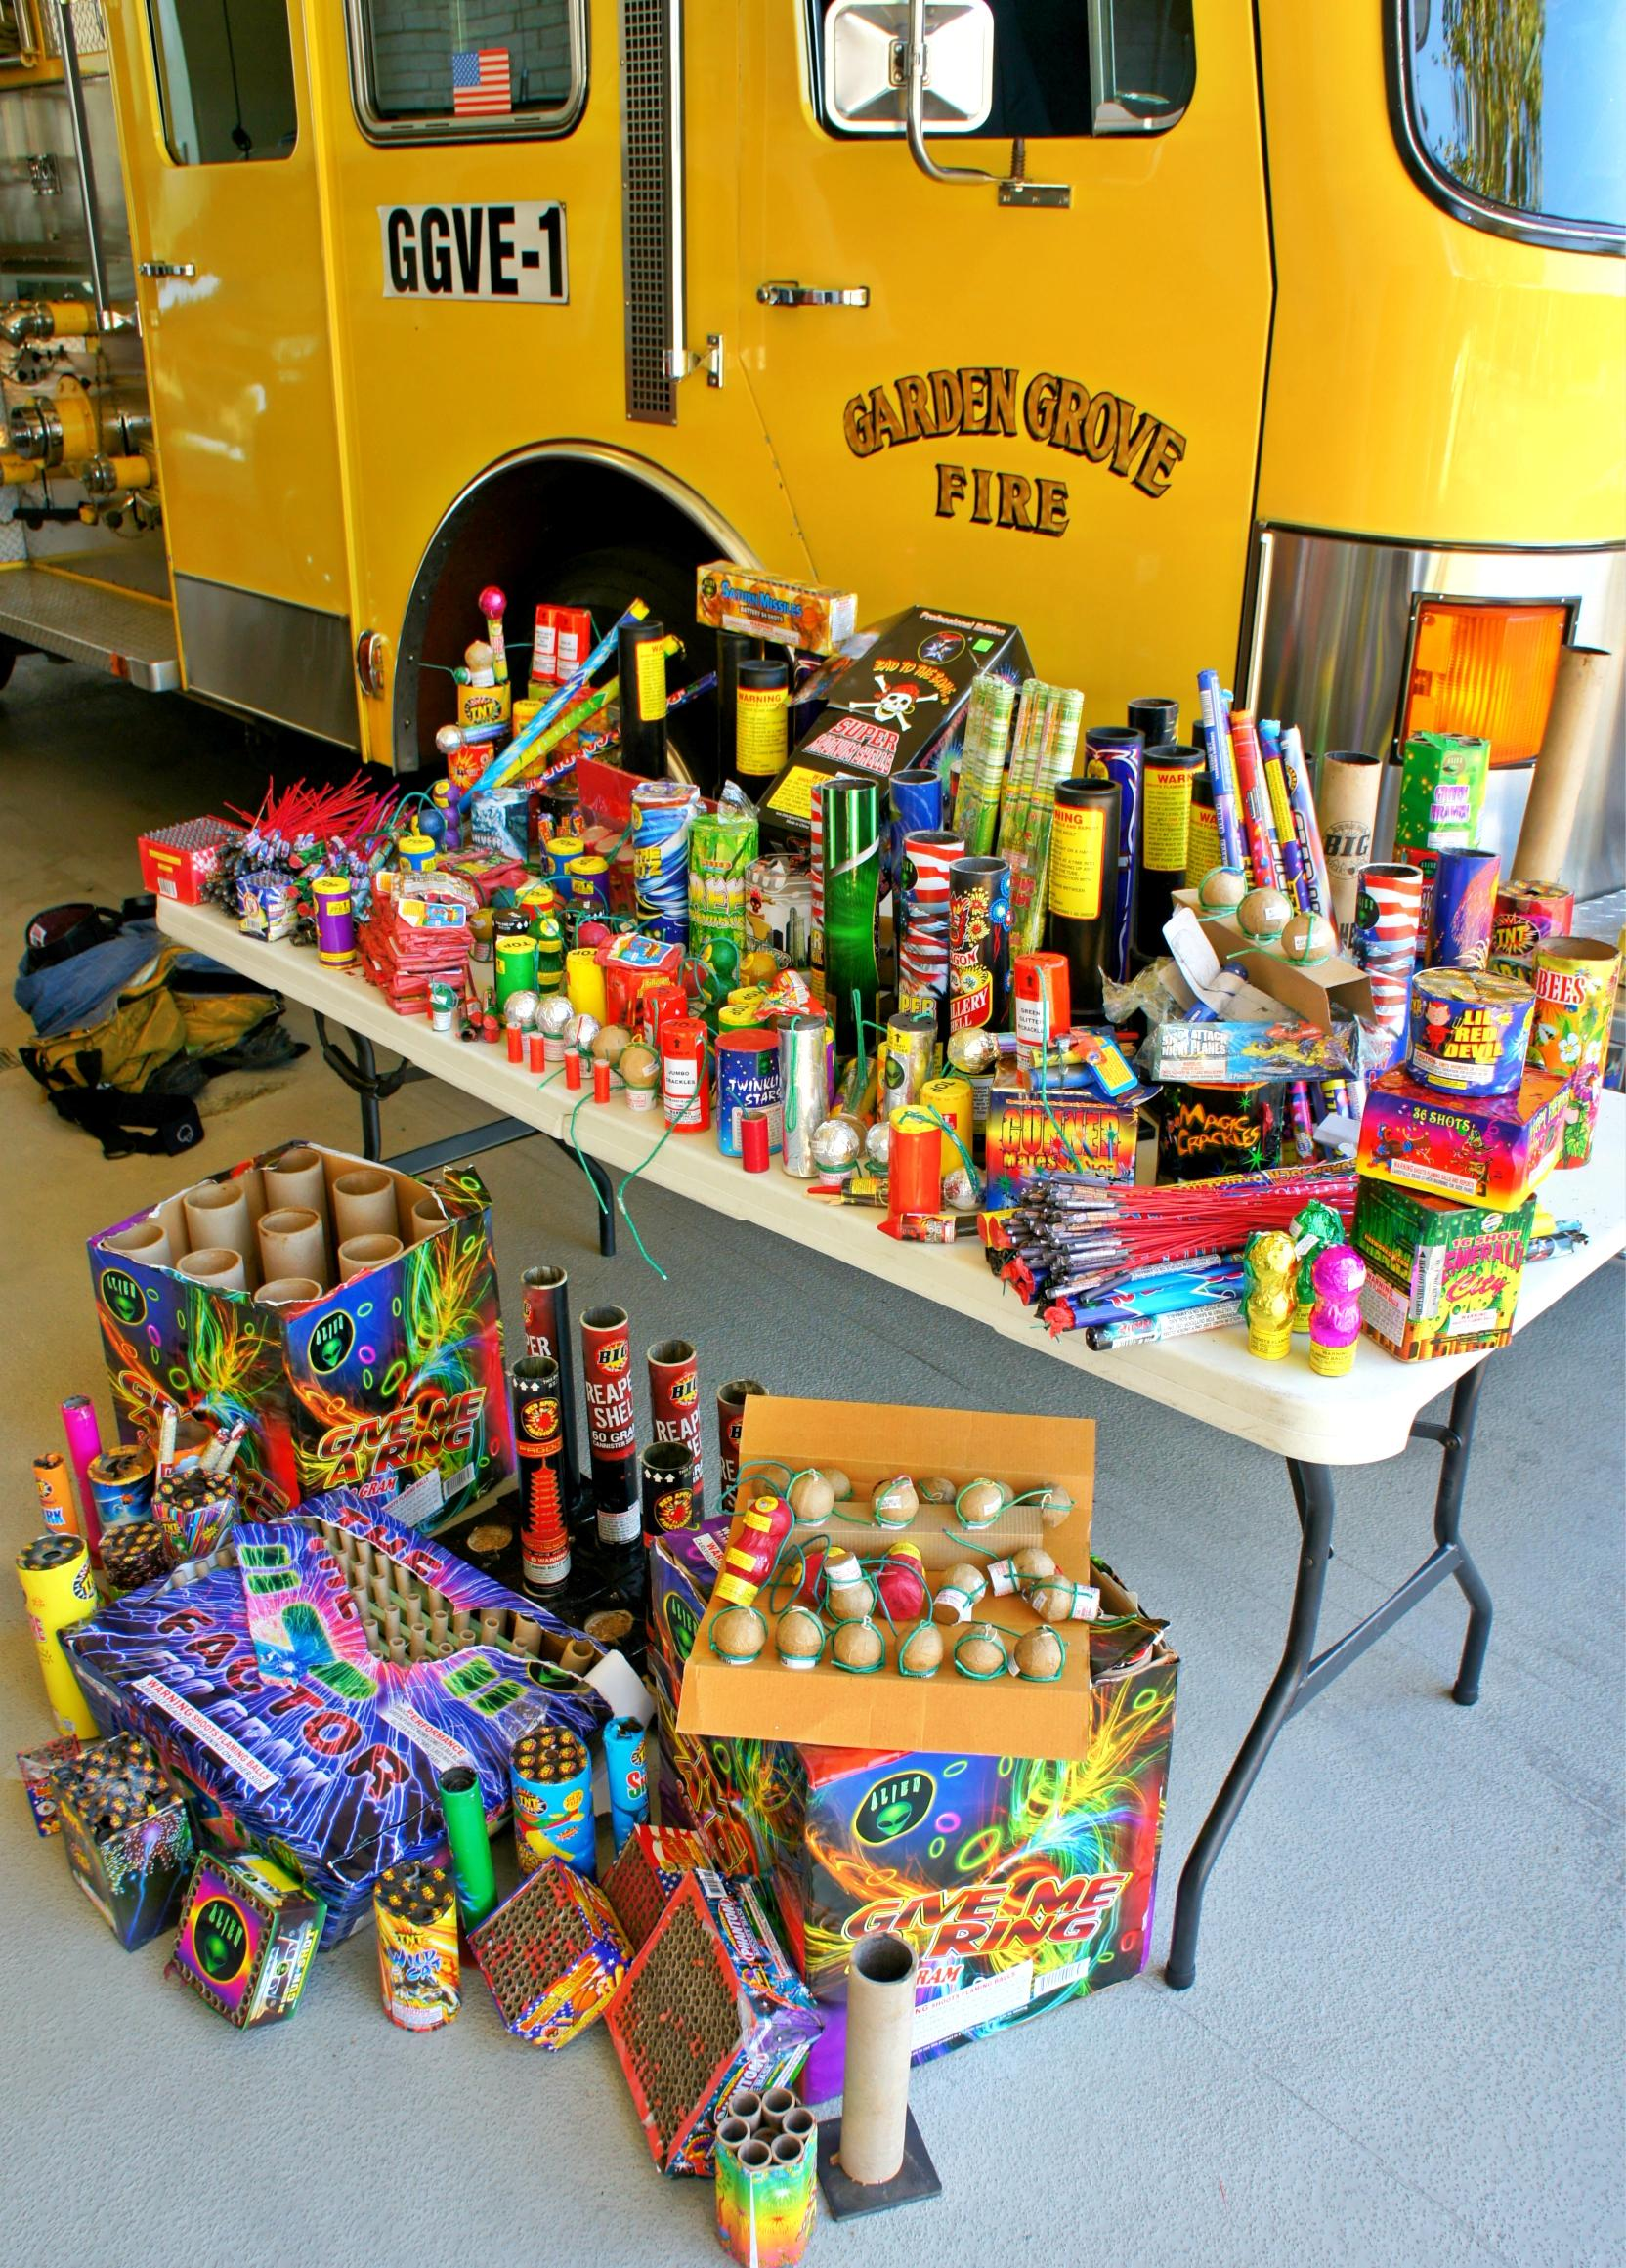 illegal fireworks seized in 2014